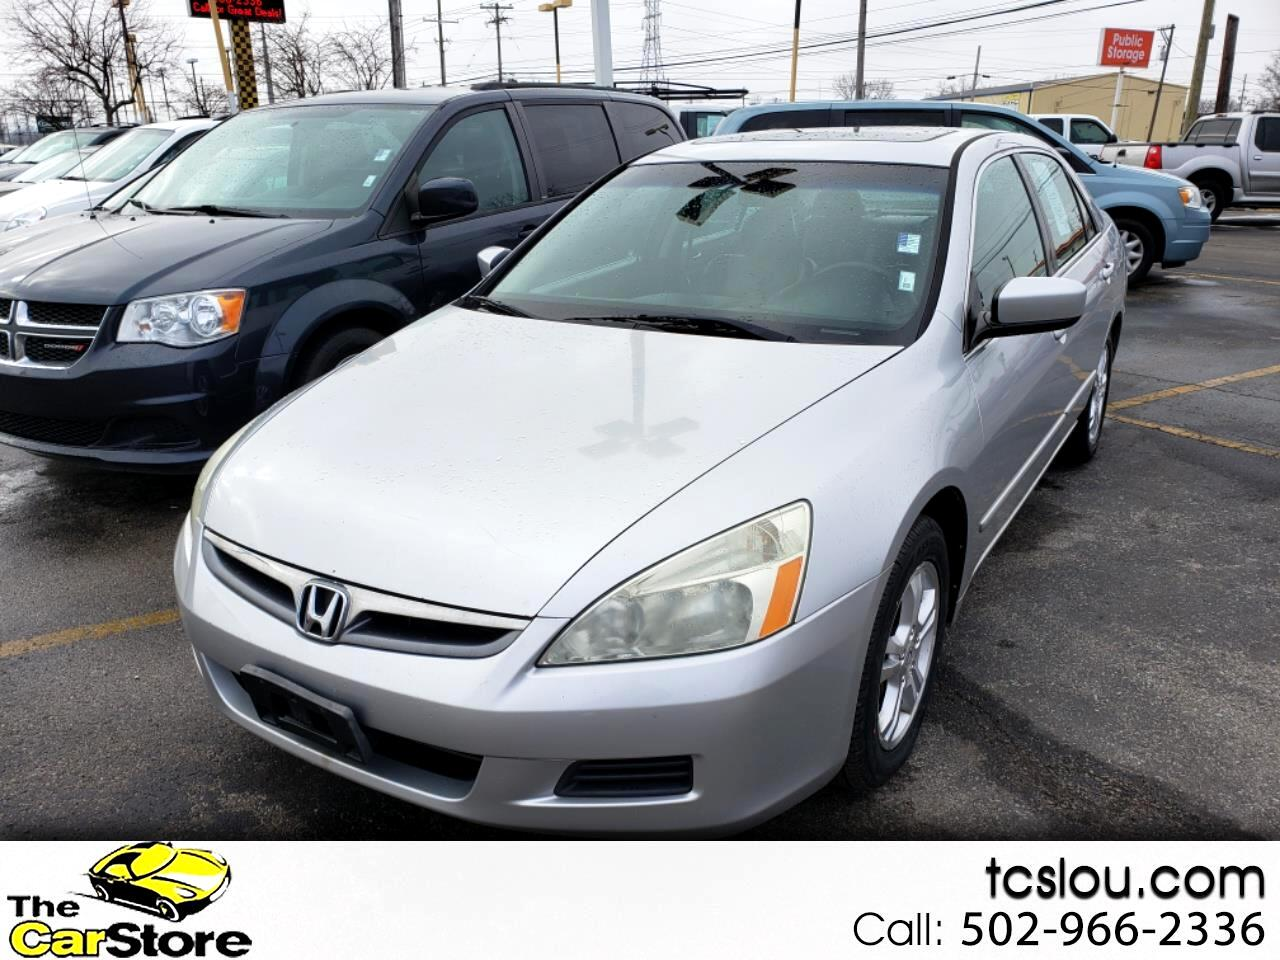 2007 Honda Accord Sdn 4dr I4 AT EX-L w/Navi